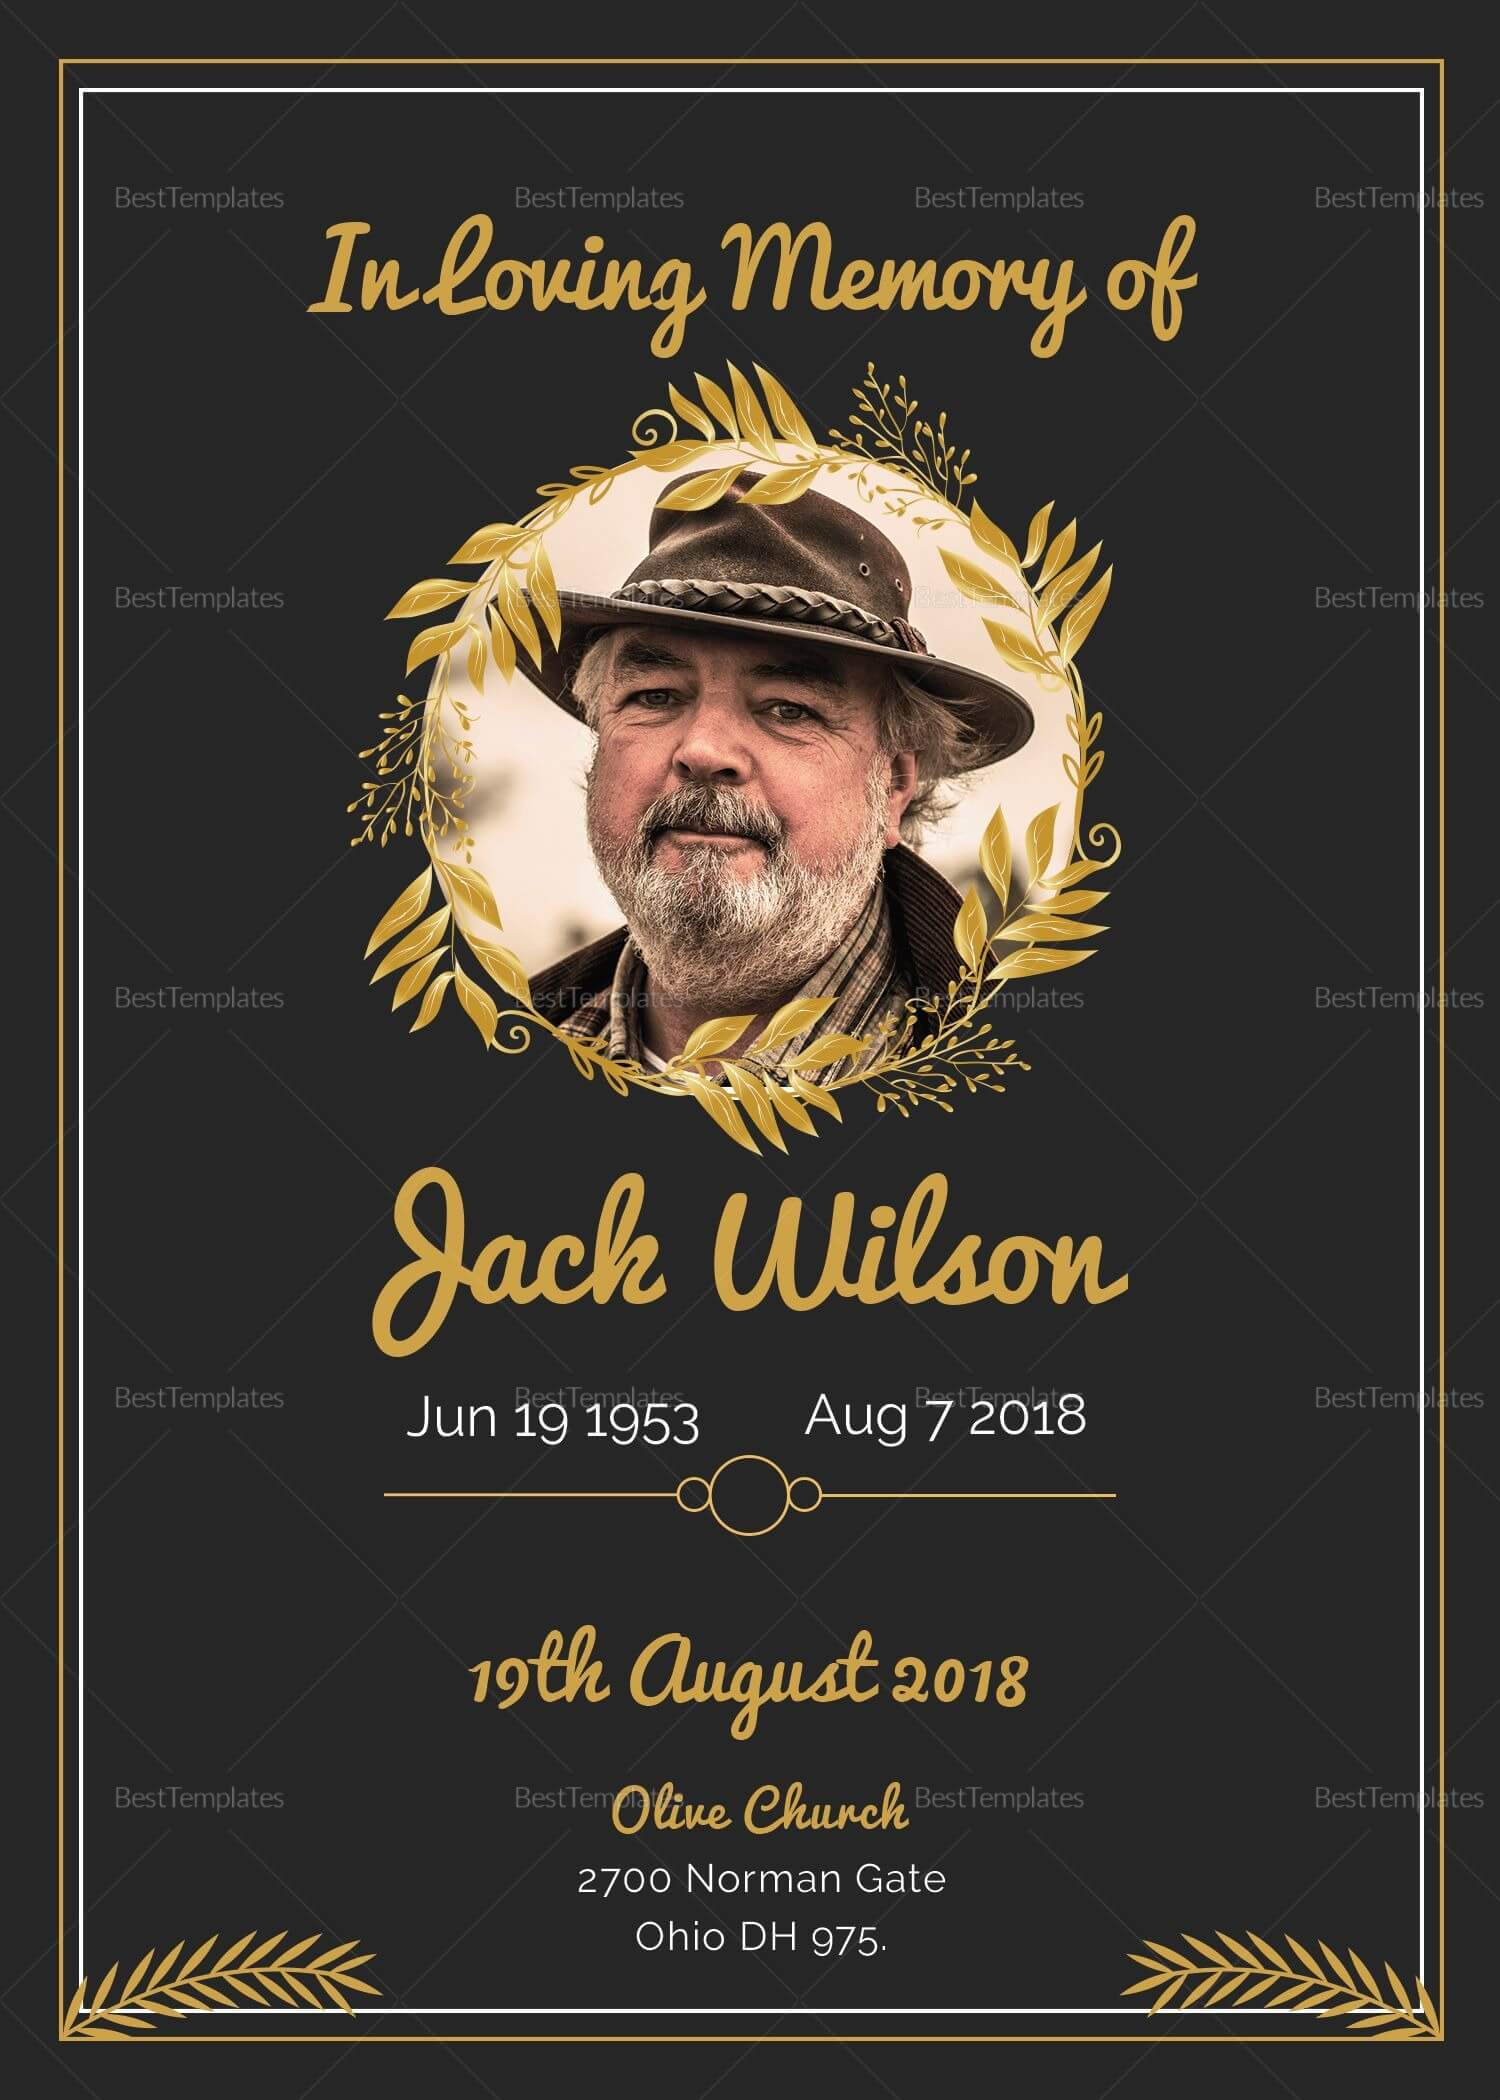 Funeral Invitation Card Template | Funeral Invitation Intended For Funeral Invitation Card Template